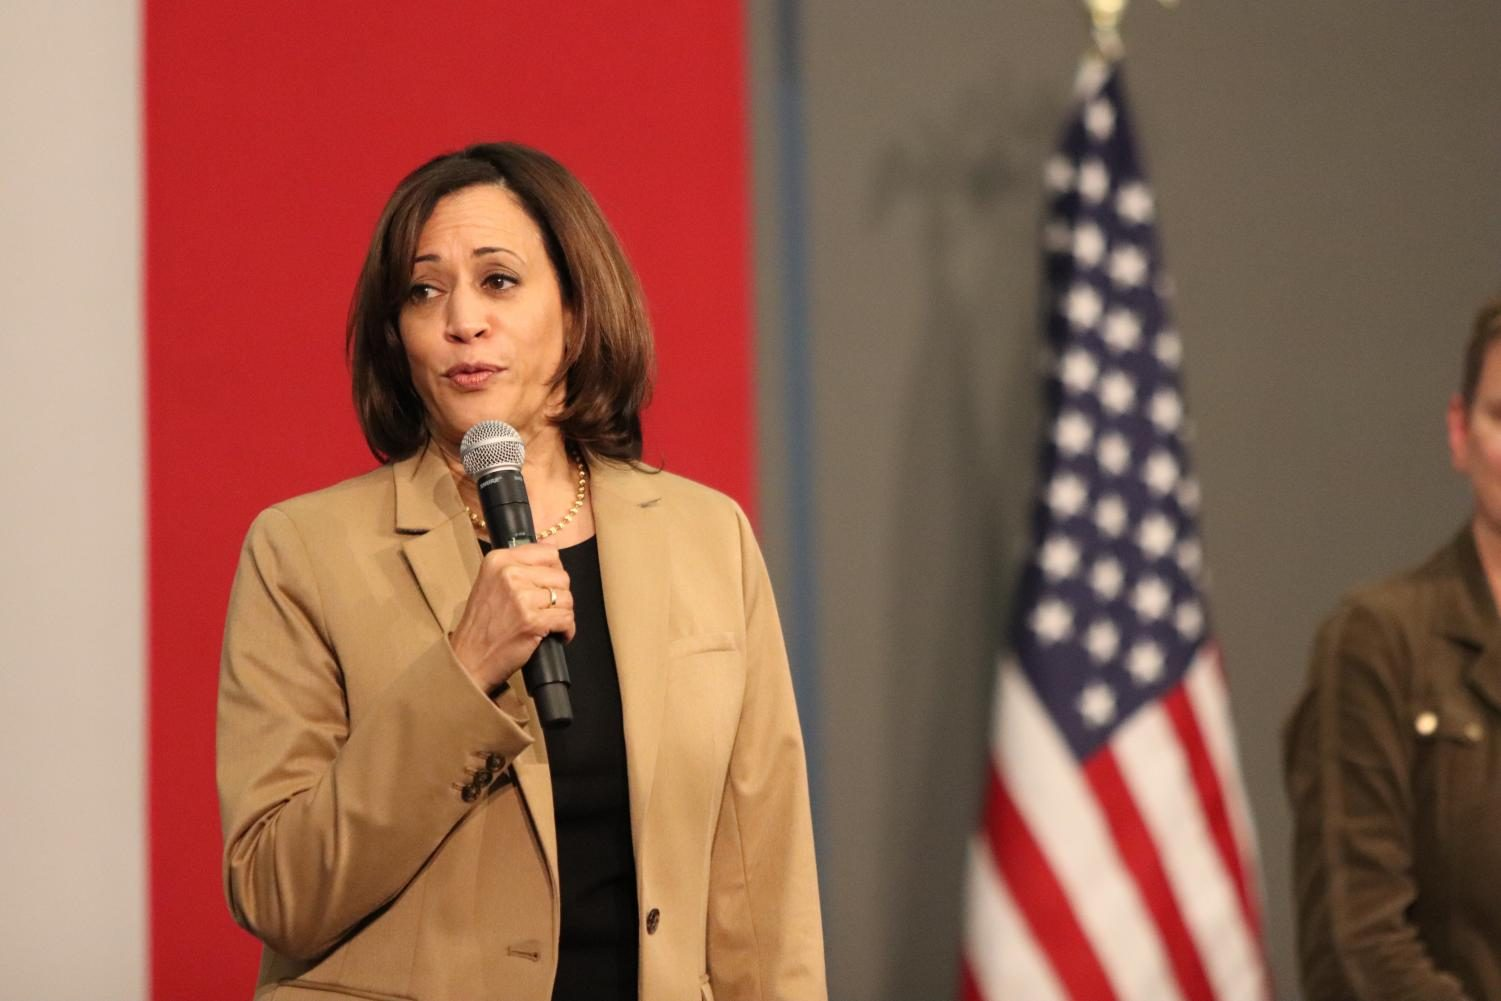 Presidential candidate Kamala Harris held a rally in Iowa City on Tuesday, October 22, 2019.